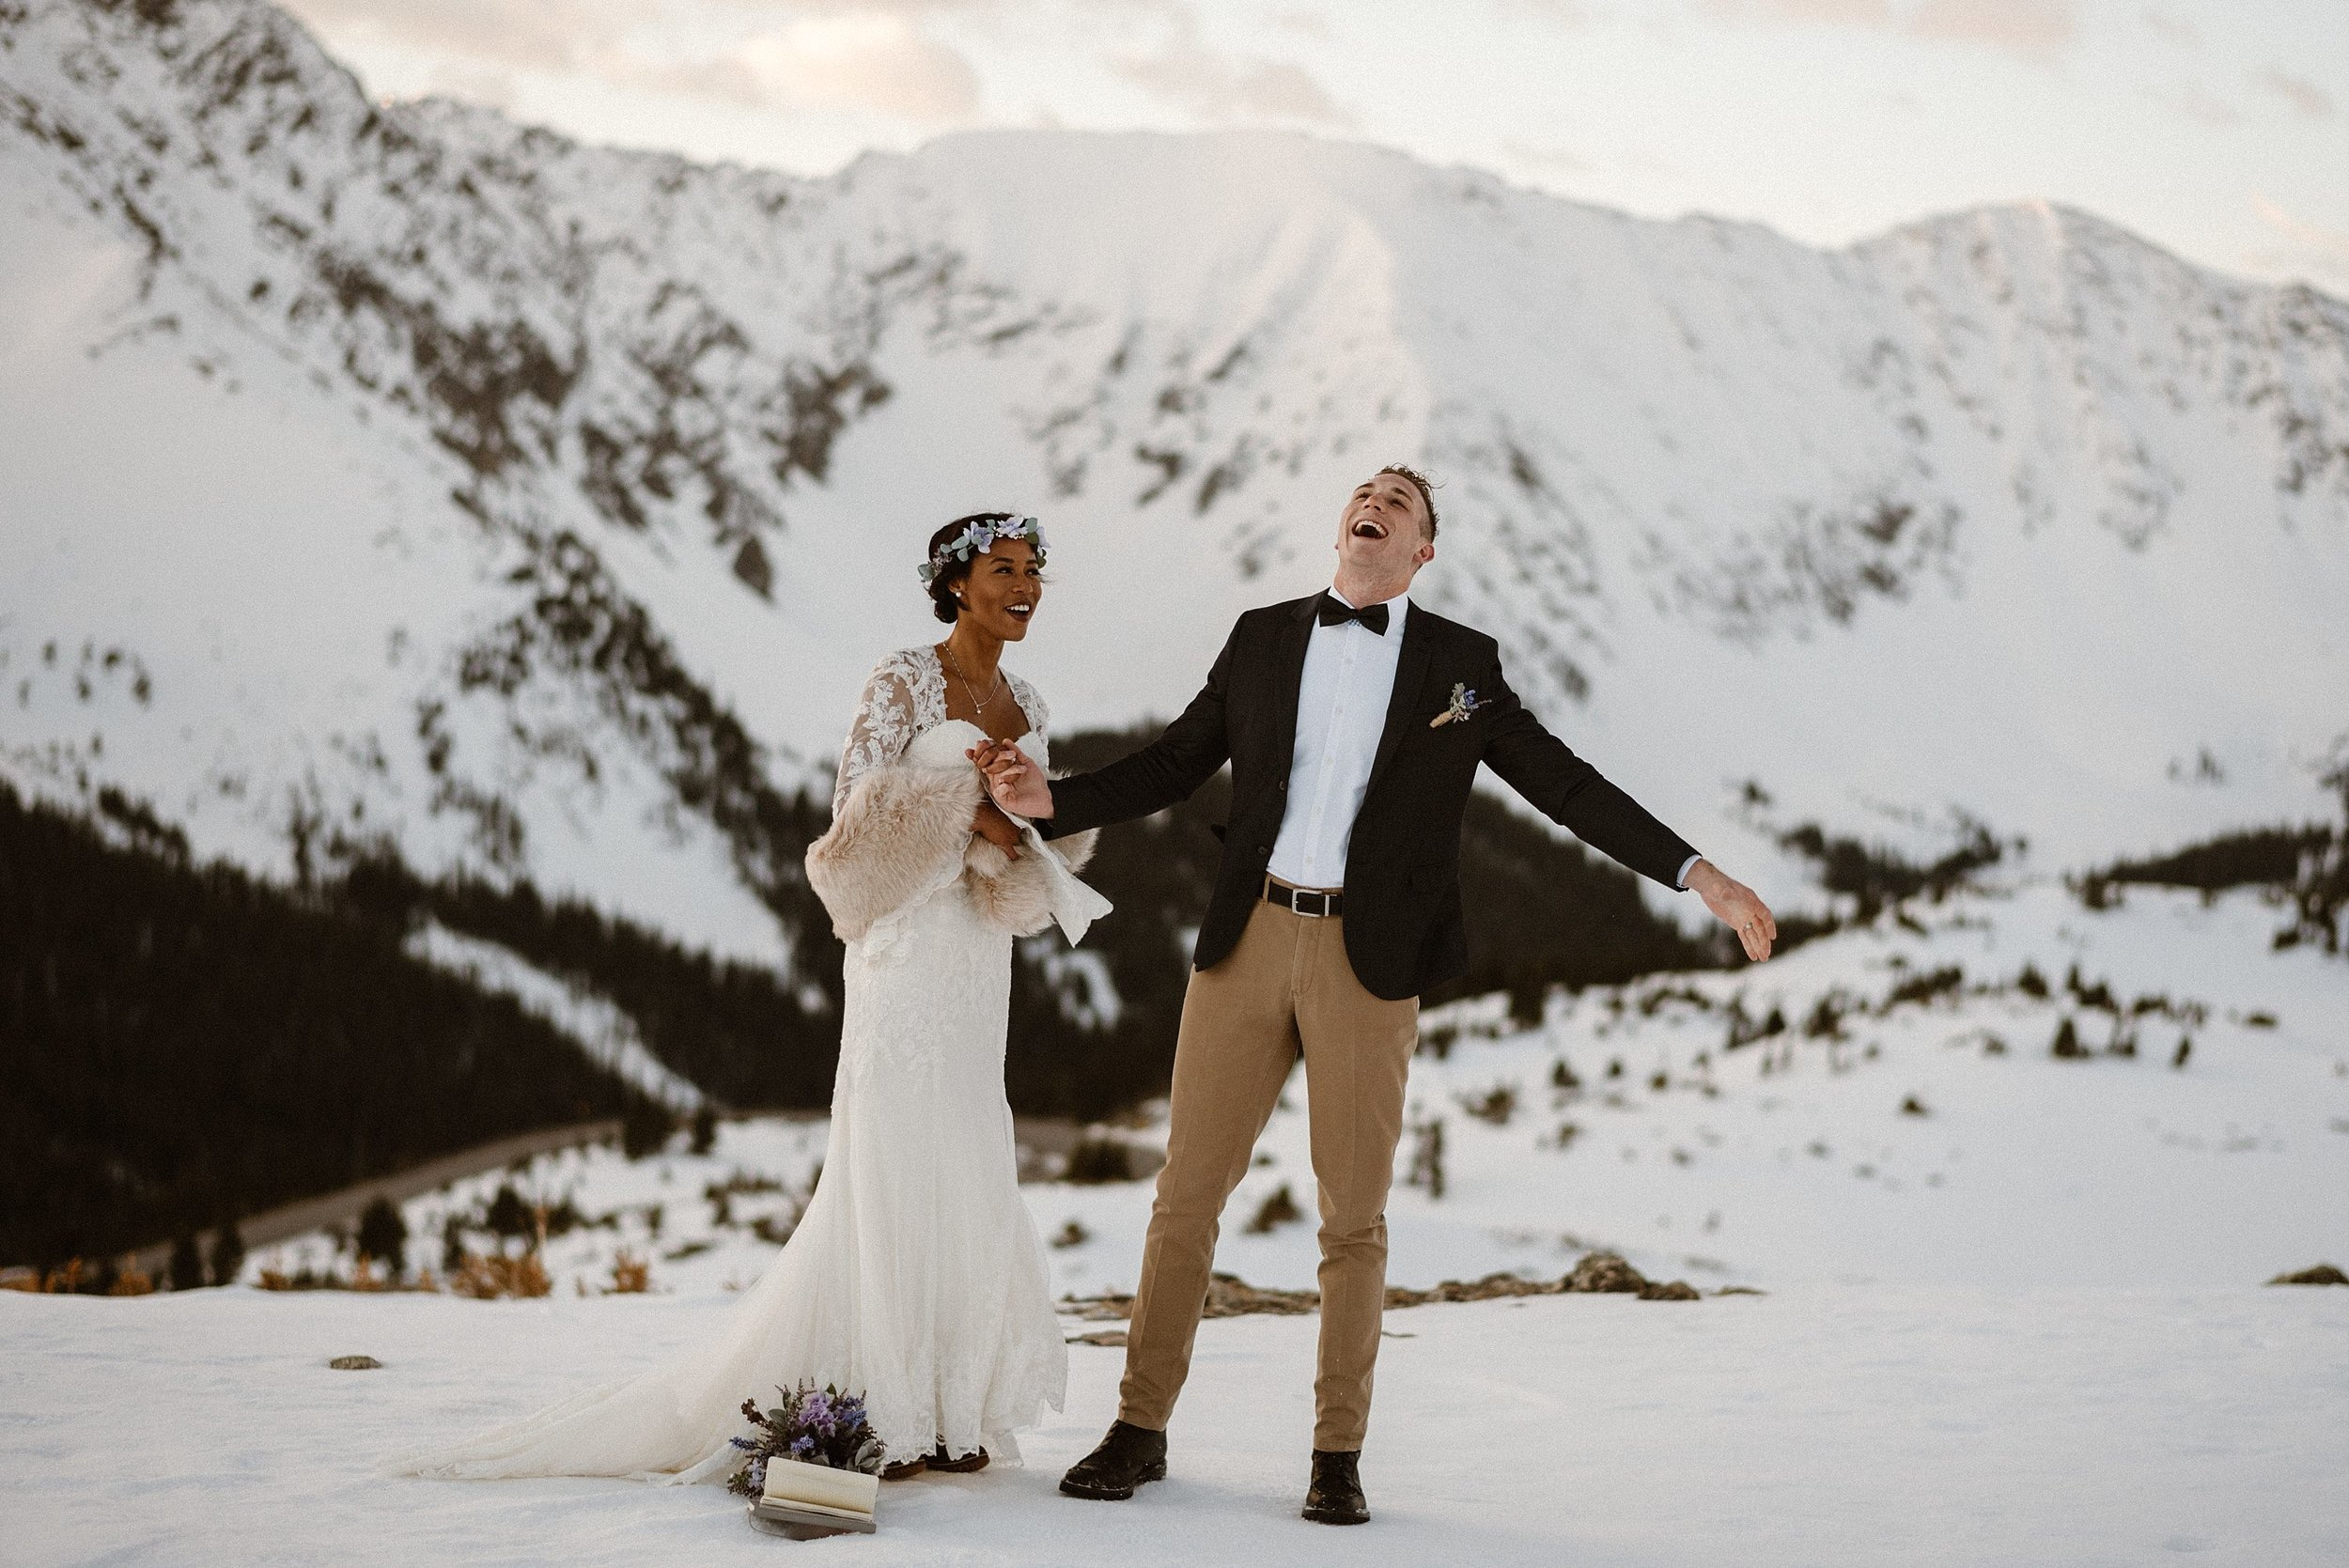 With no one around but their elopement photographer Maddie Mae, Jared let out an excited scream to the empty mountains. He and his stunning mountain bride Mikayla, chose self solemnization for their intimate elopement up Loveland Pass.